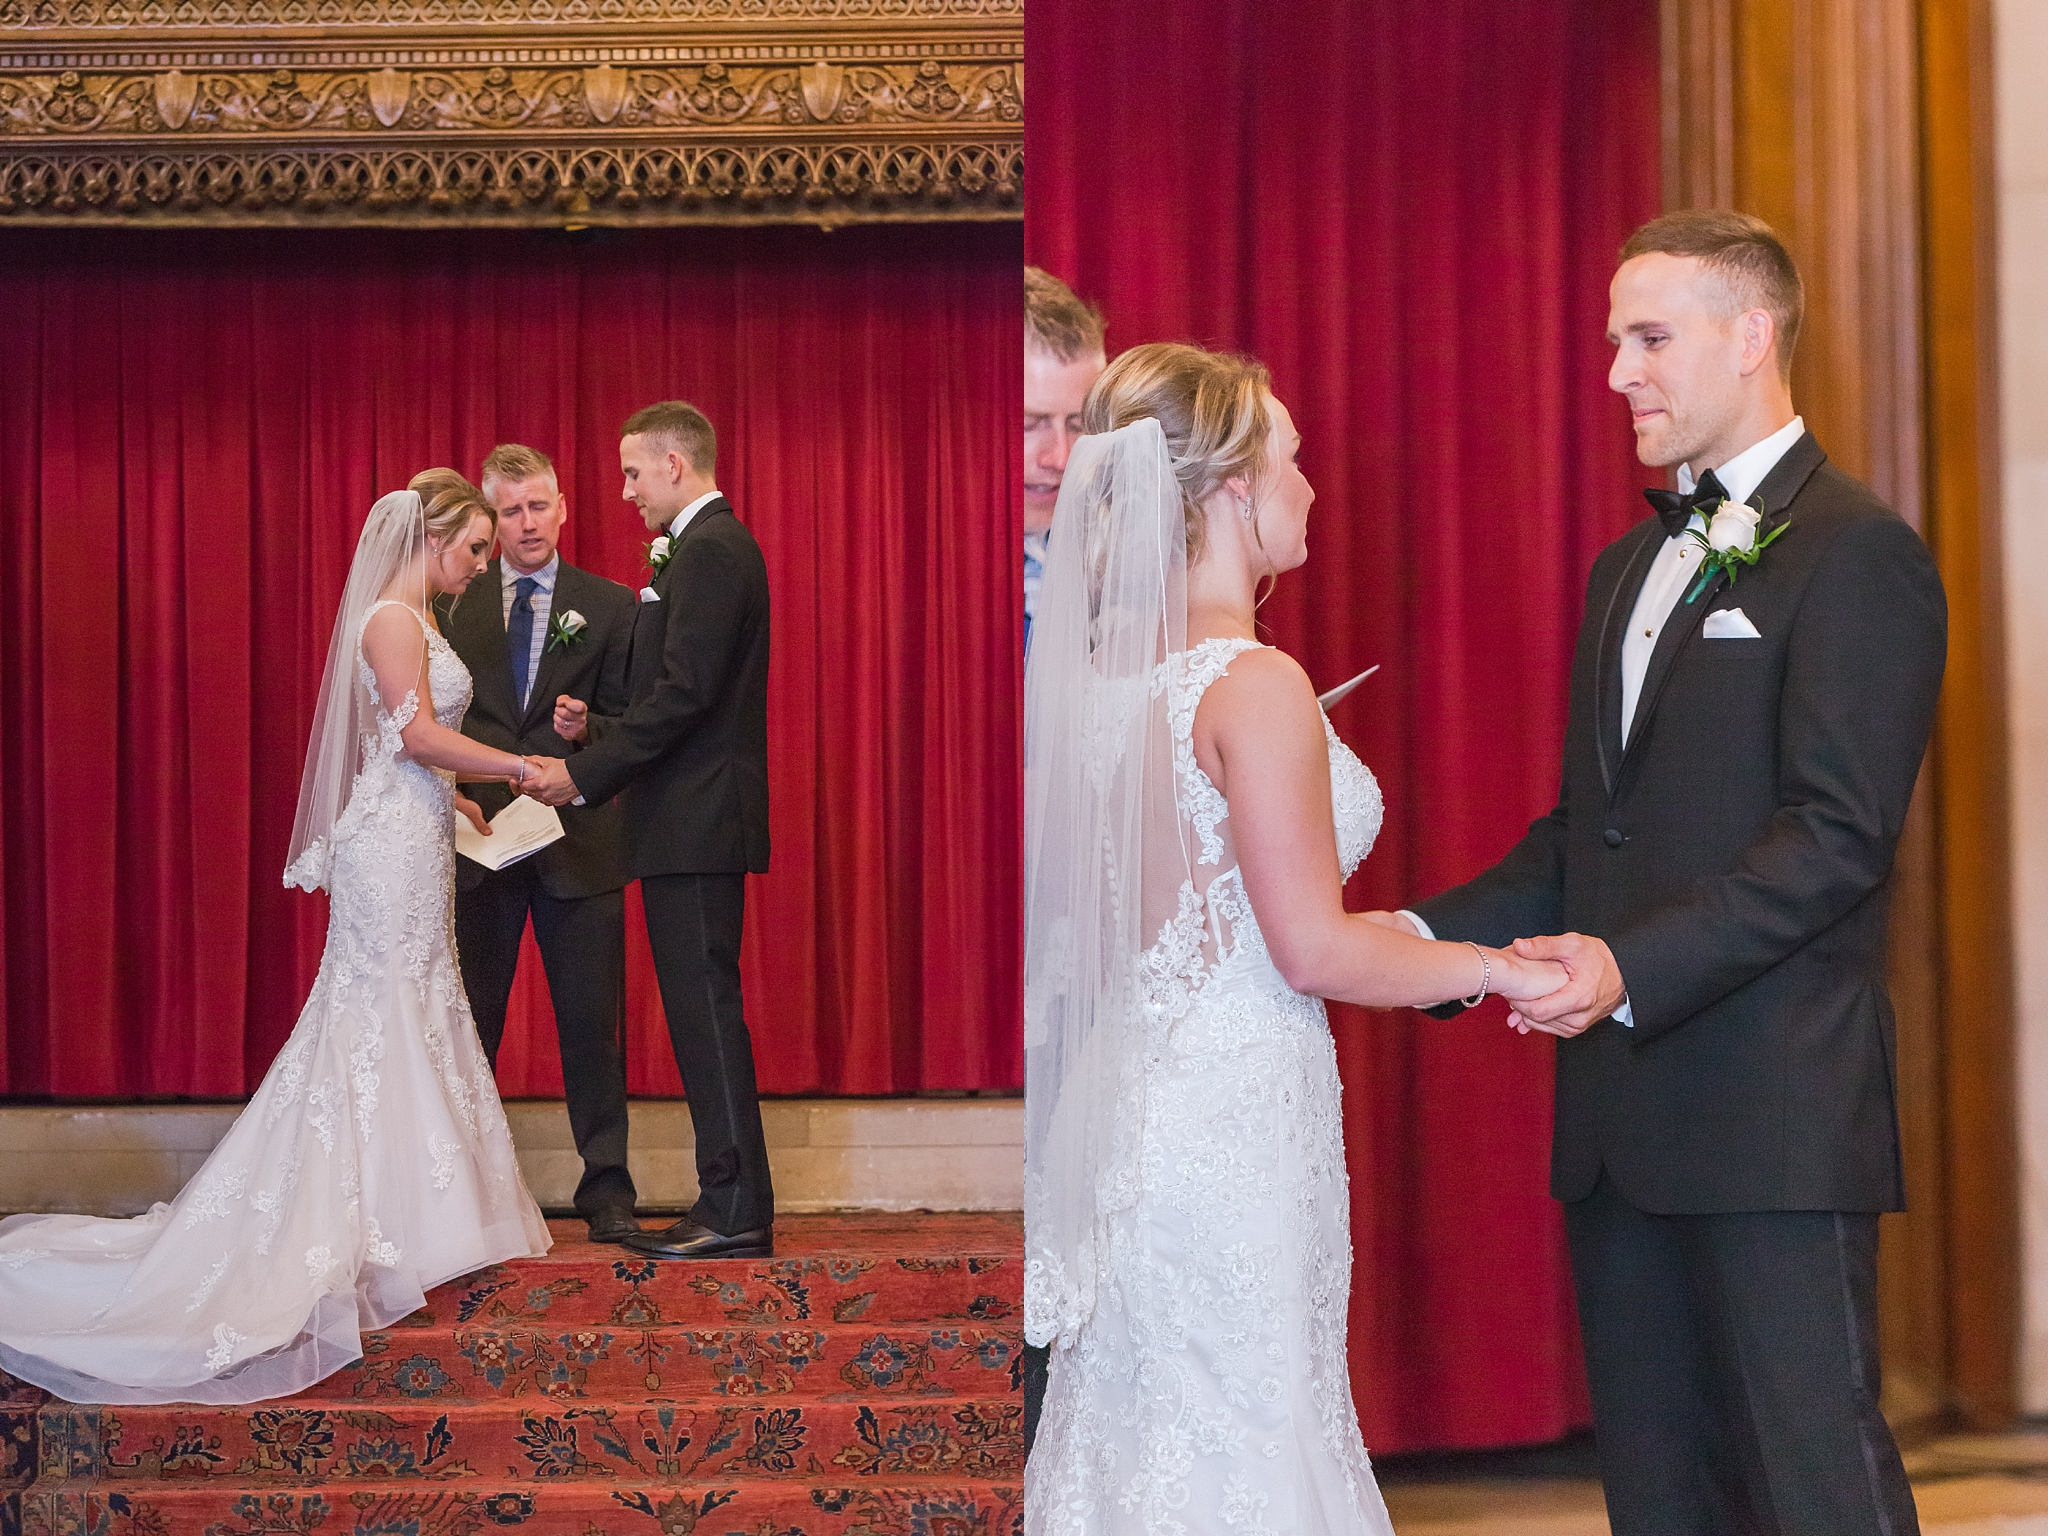 candid-romantic-wedding-photos-at-the-masonic-temple-belle-isle-detroit-institute-of-arts-in-detroit-michigan-by-courtney-carolyn-photography_0075.jpg